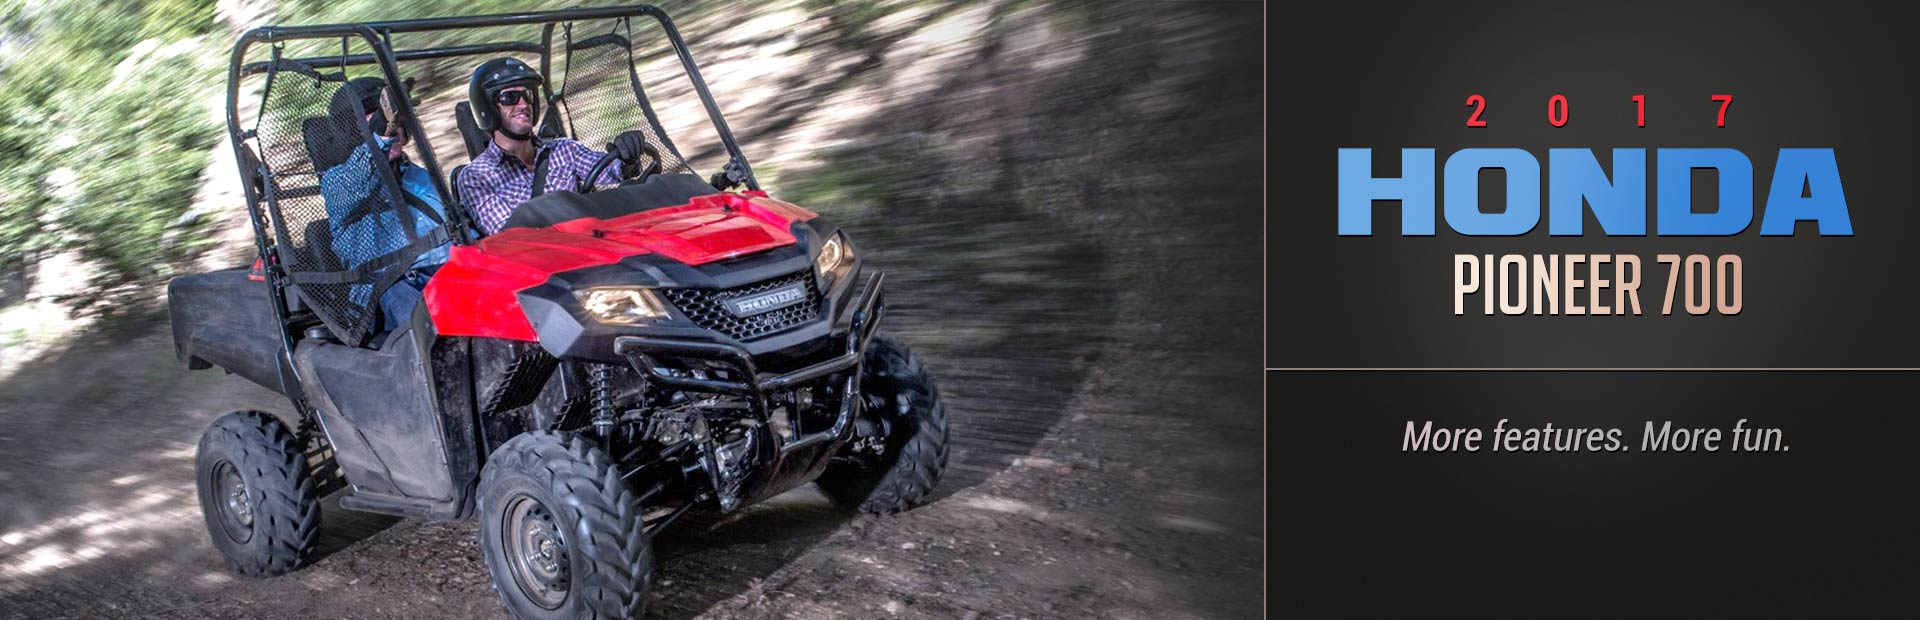 The 2017 Honda Pioneer 700: Click here for details.